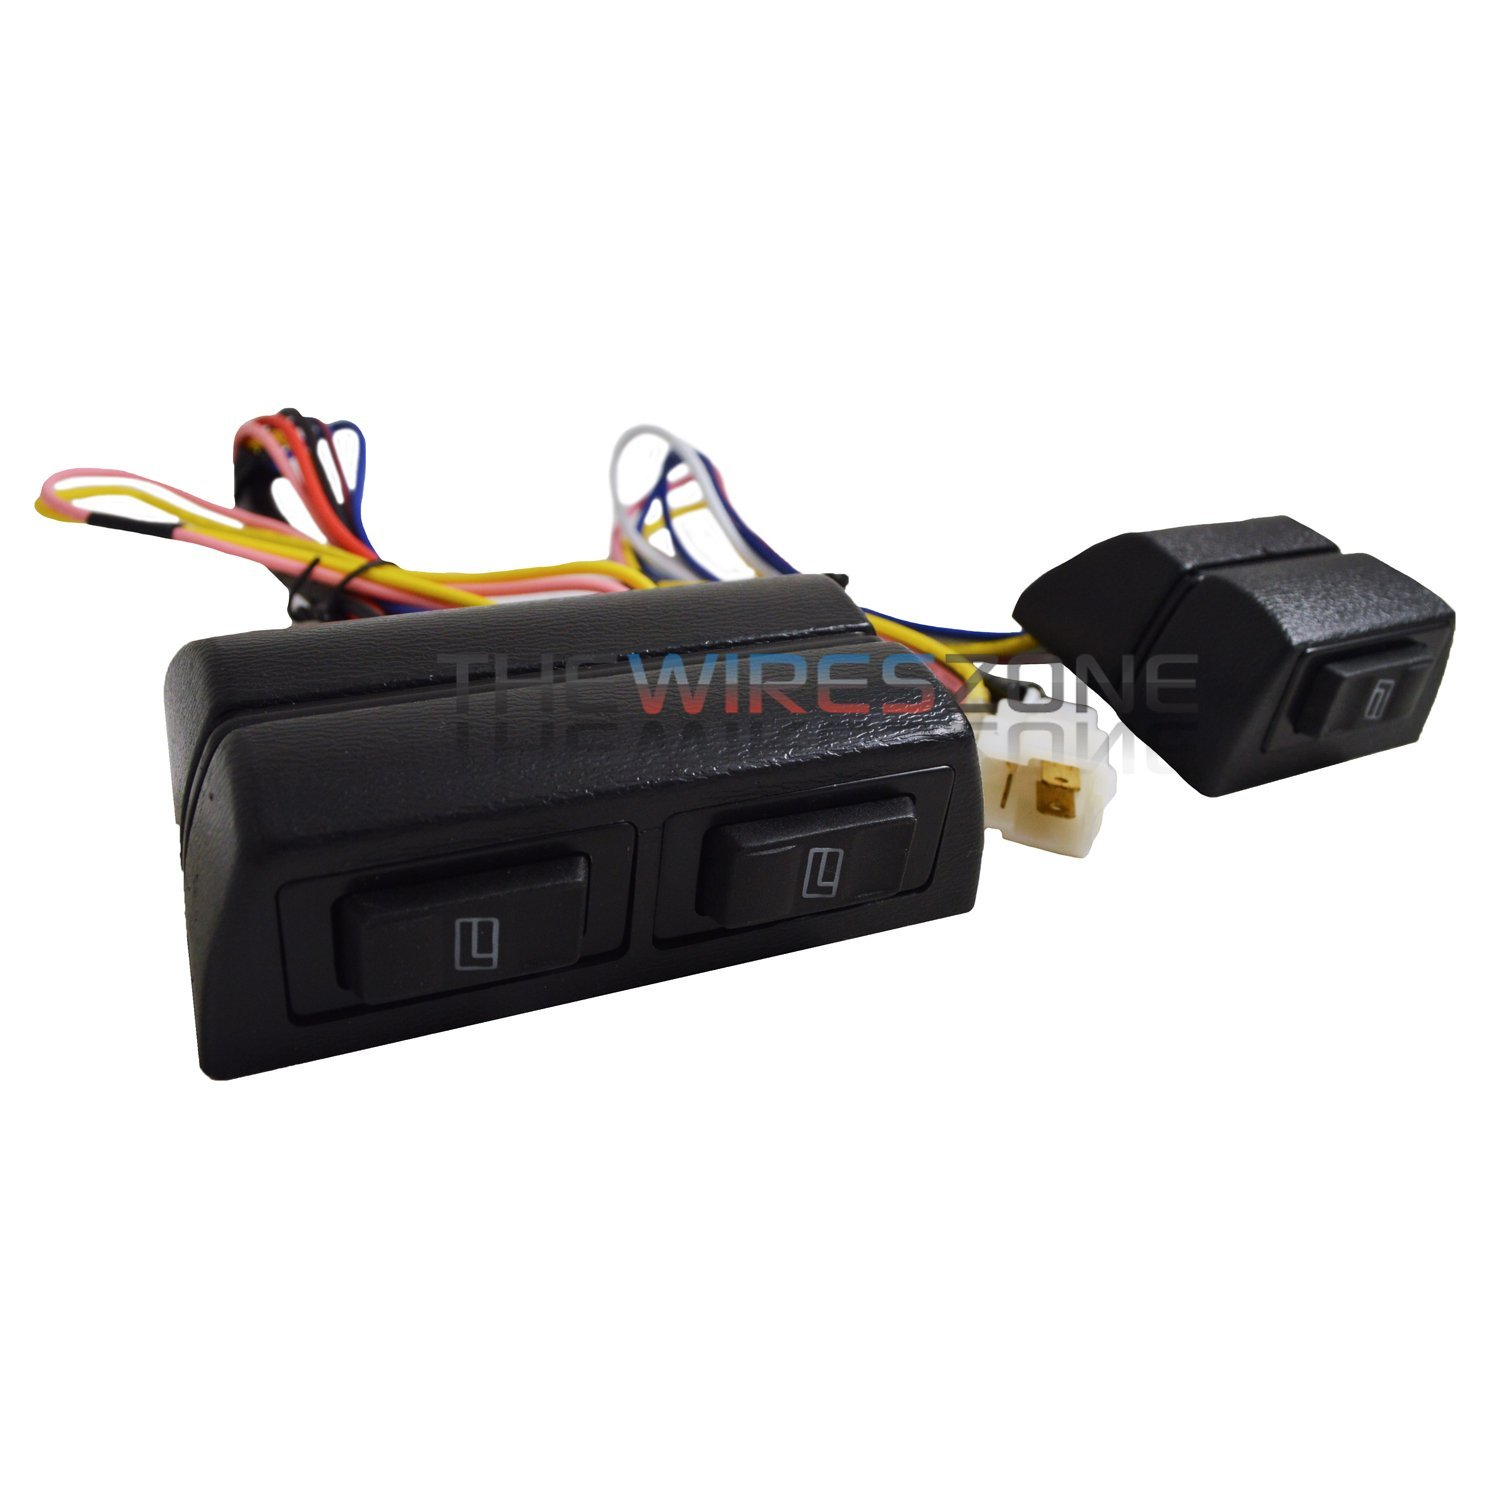 New Universal 12 Volts Power Window Switch Kit w/Wire Harness 12V by The Wires Zone